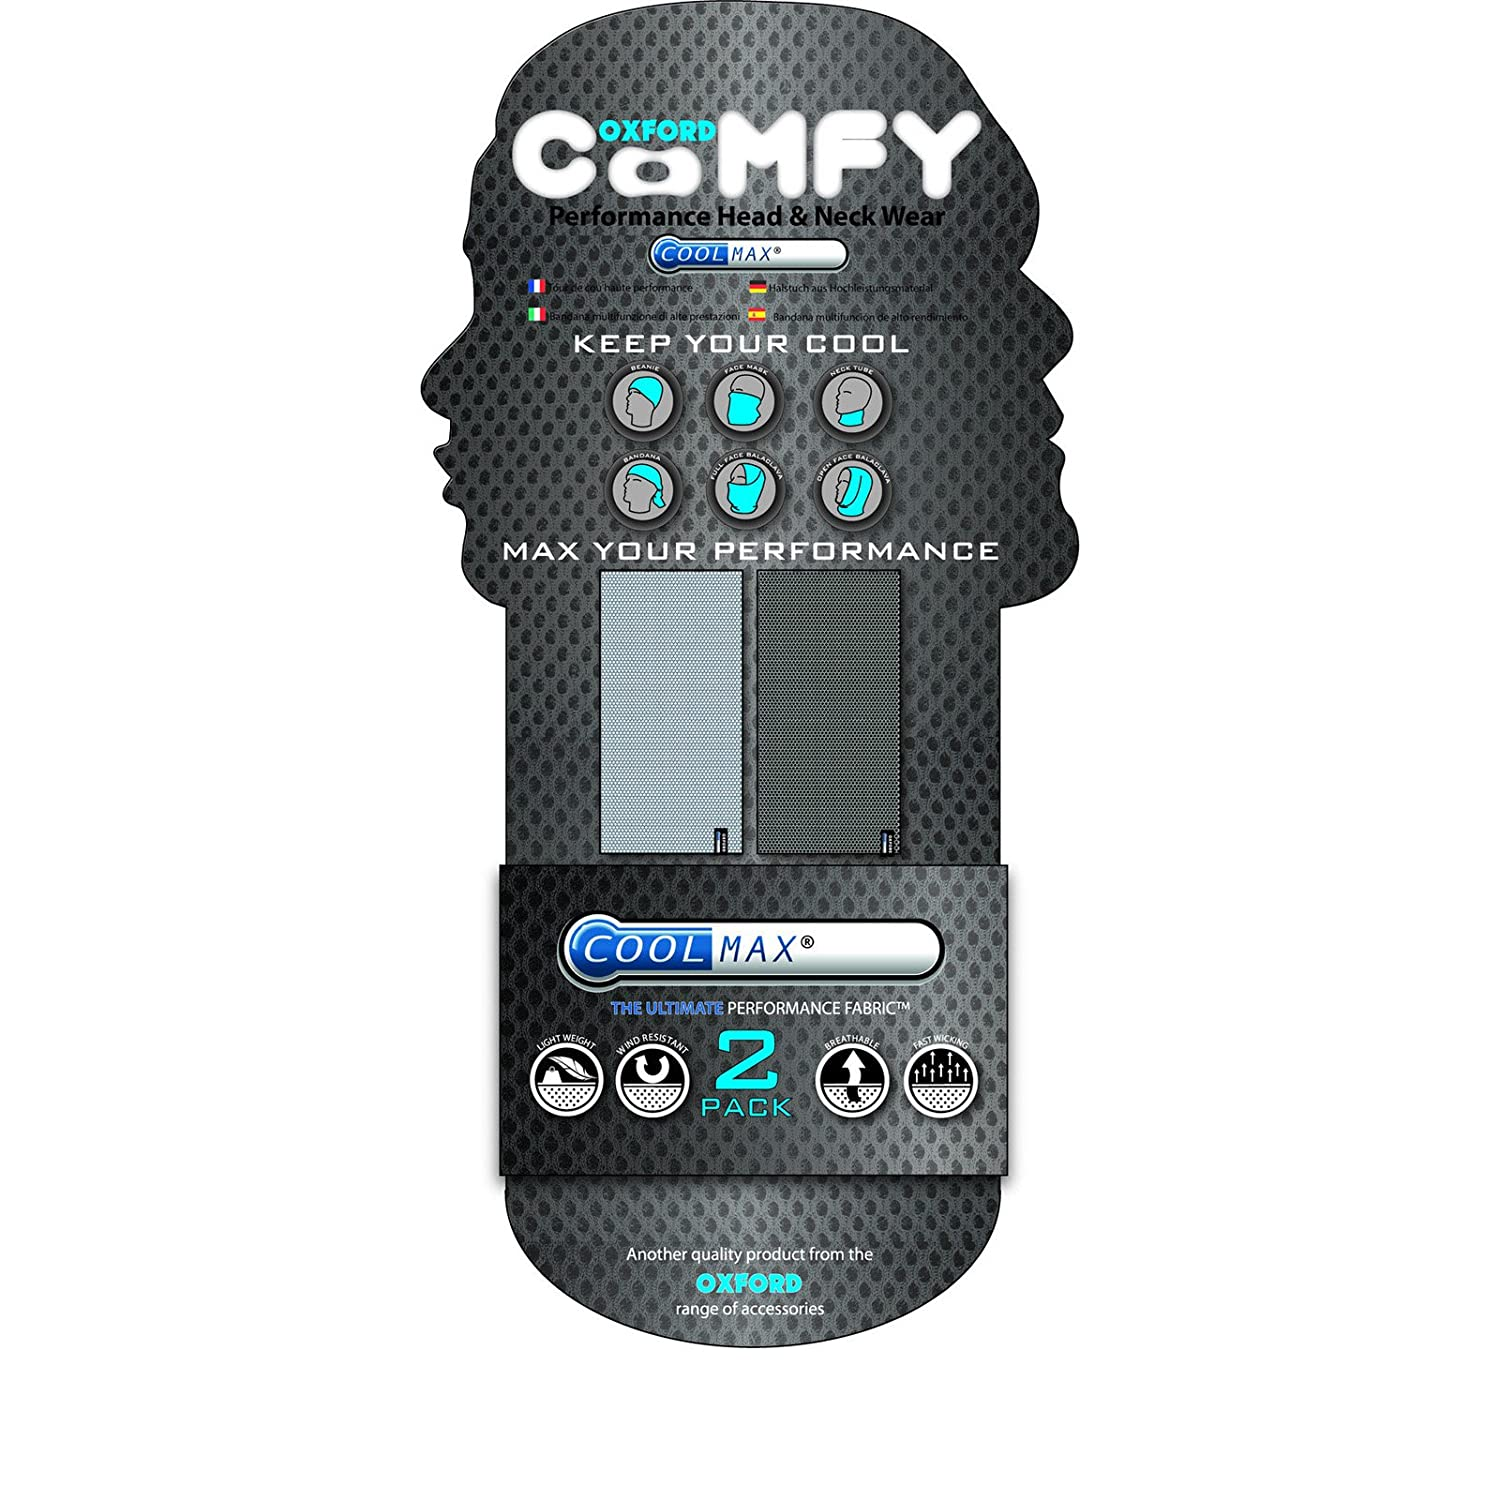 Oxford Comfy Coolmax Performance Head And Neck Wear